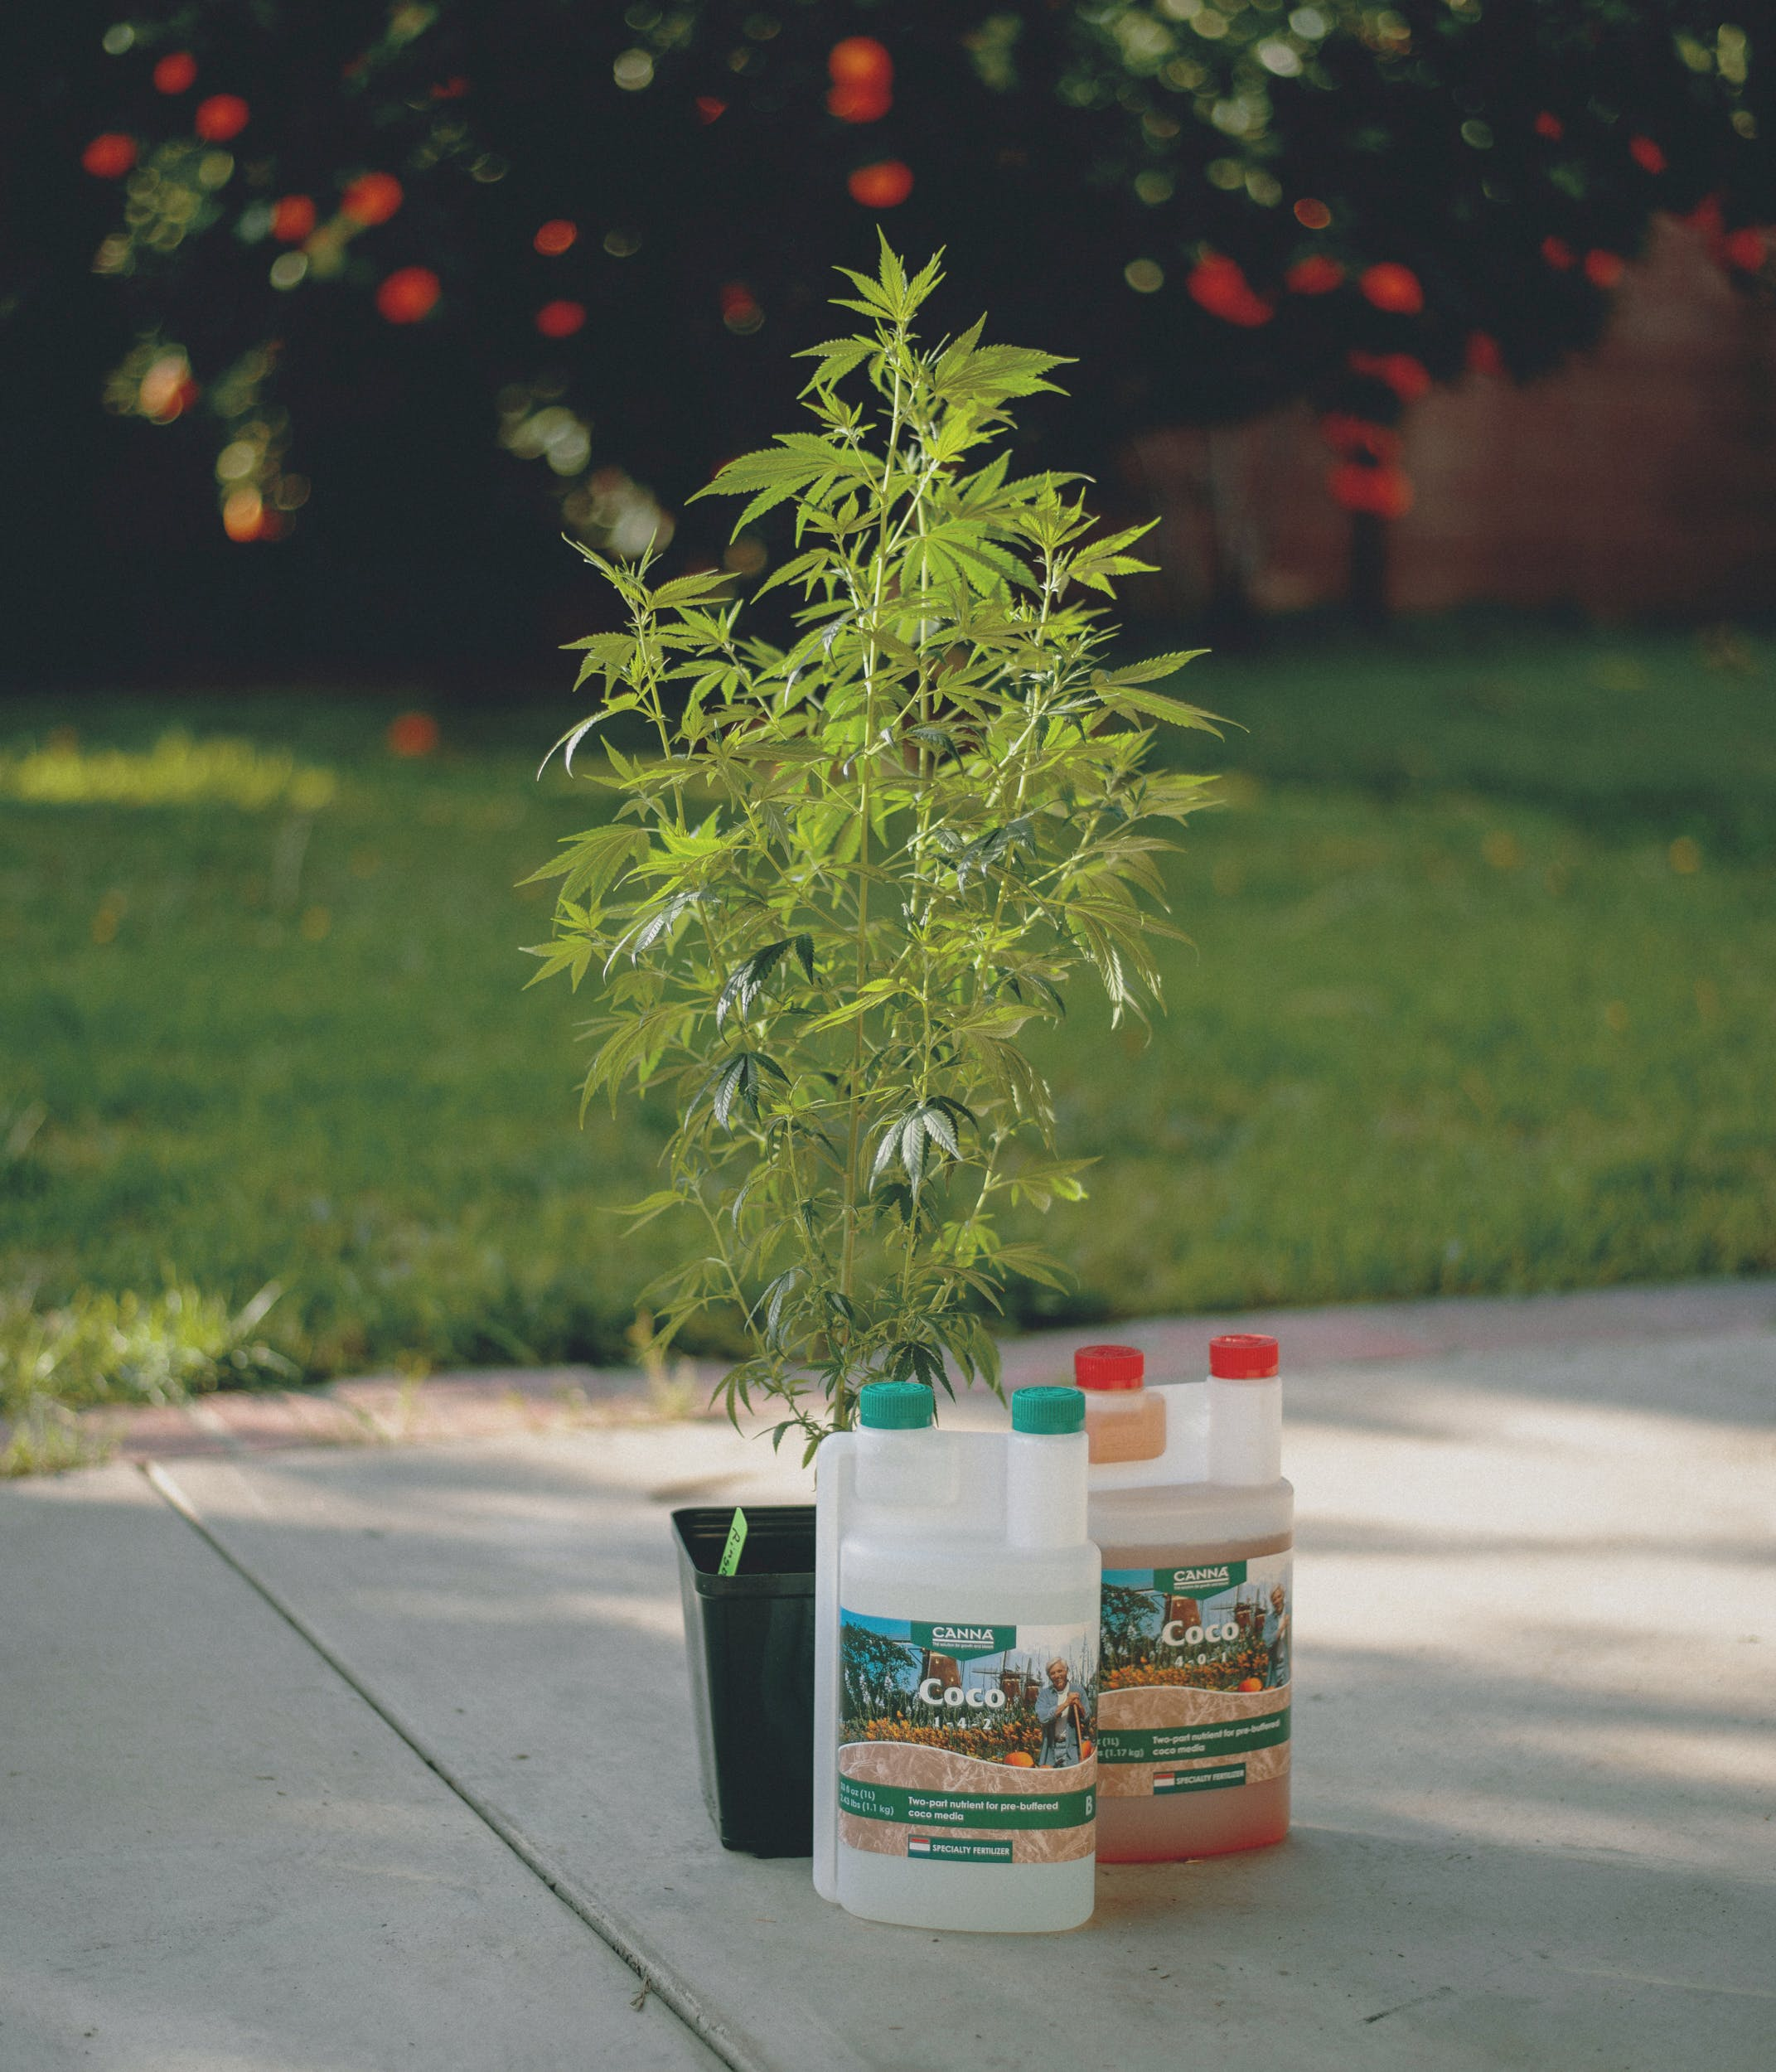 Best Weed Fertilizer 6 Grow Like a Pro with the Best Weed Fertilizers